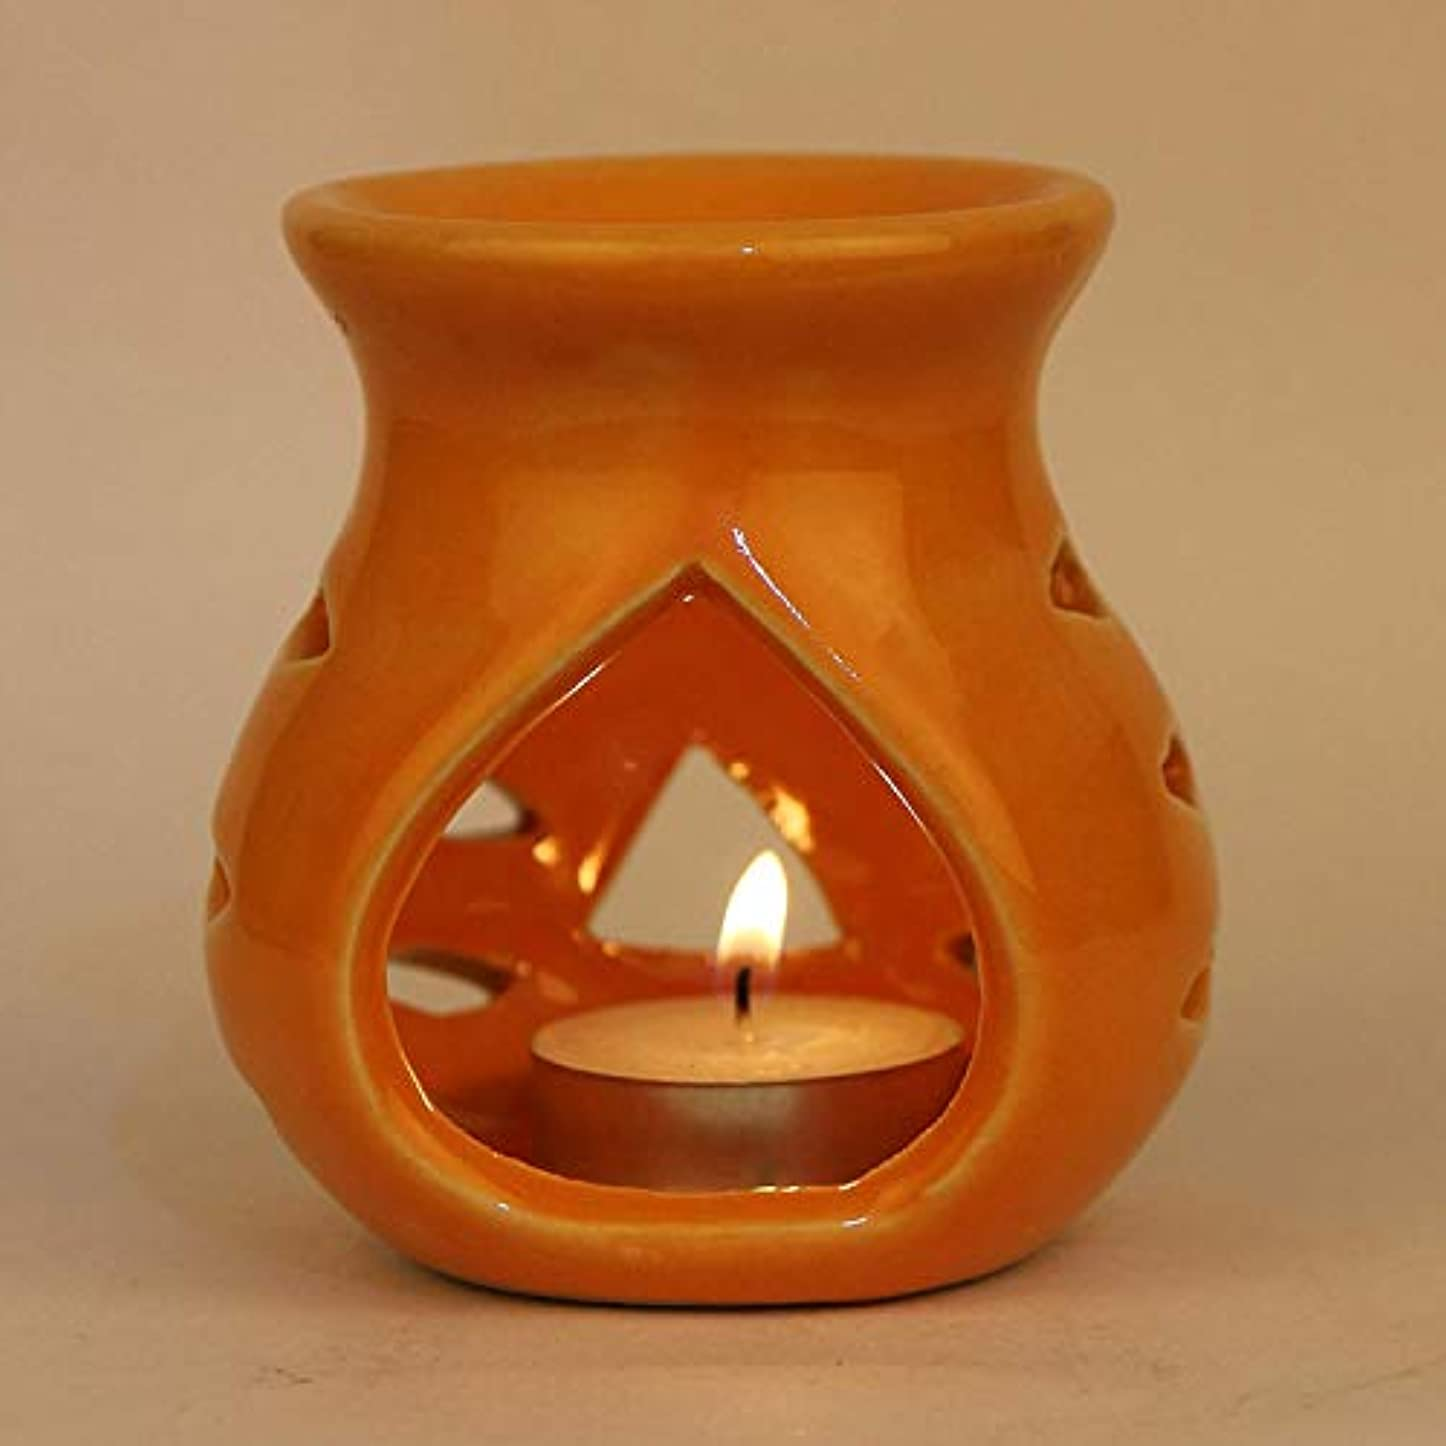 儀式まっすぐキラウエア山Pure Source India Ceramic Aroma Burner Clay Lamp,3 x4 (Orange)